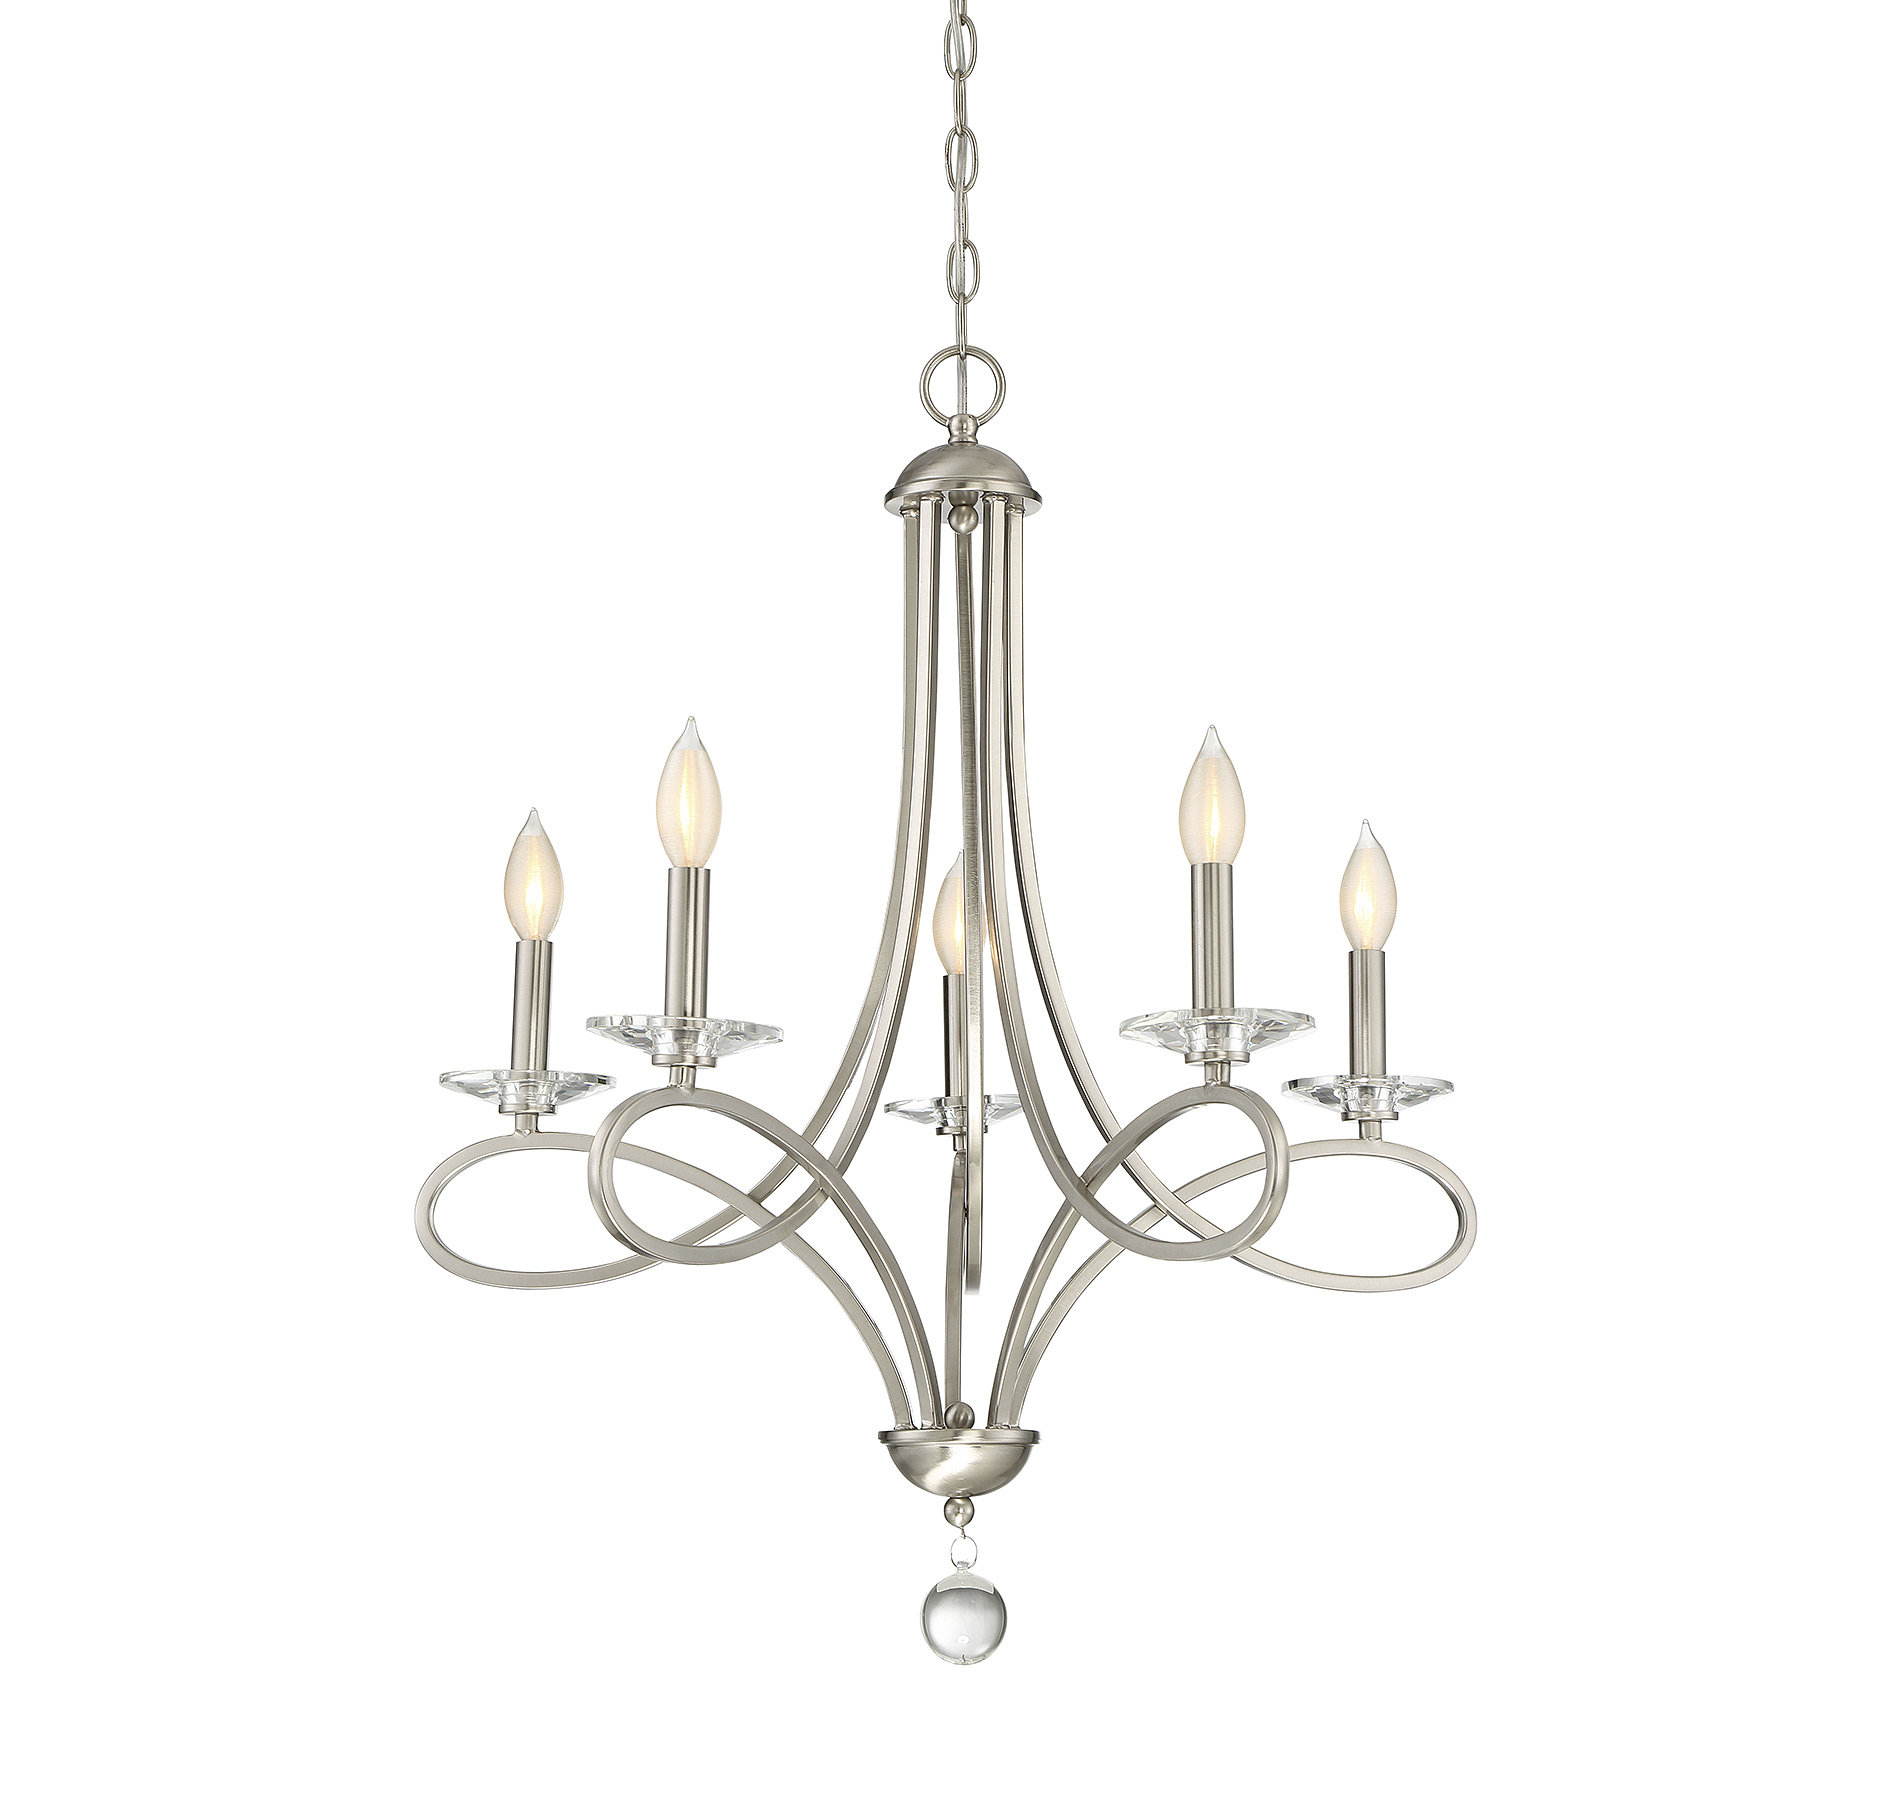 Willa Arlo Interiors Berger 5 Light Candle Style Chandelier In Berger 5 Light Candle Style Chandeliers (View 2 of 30)